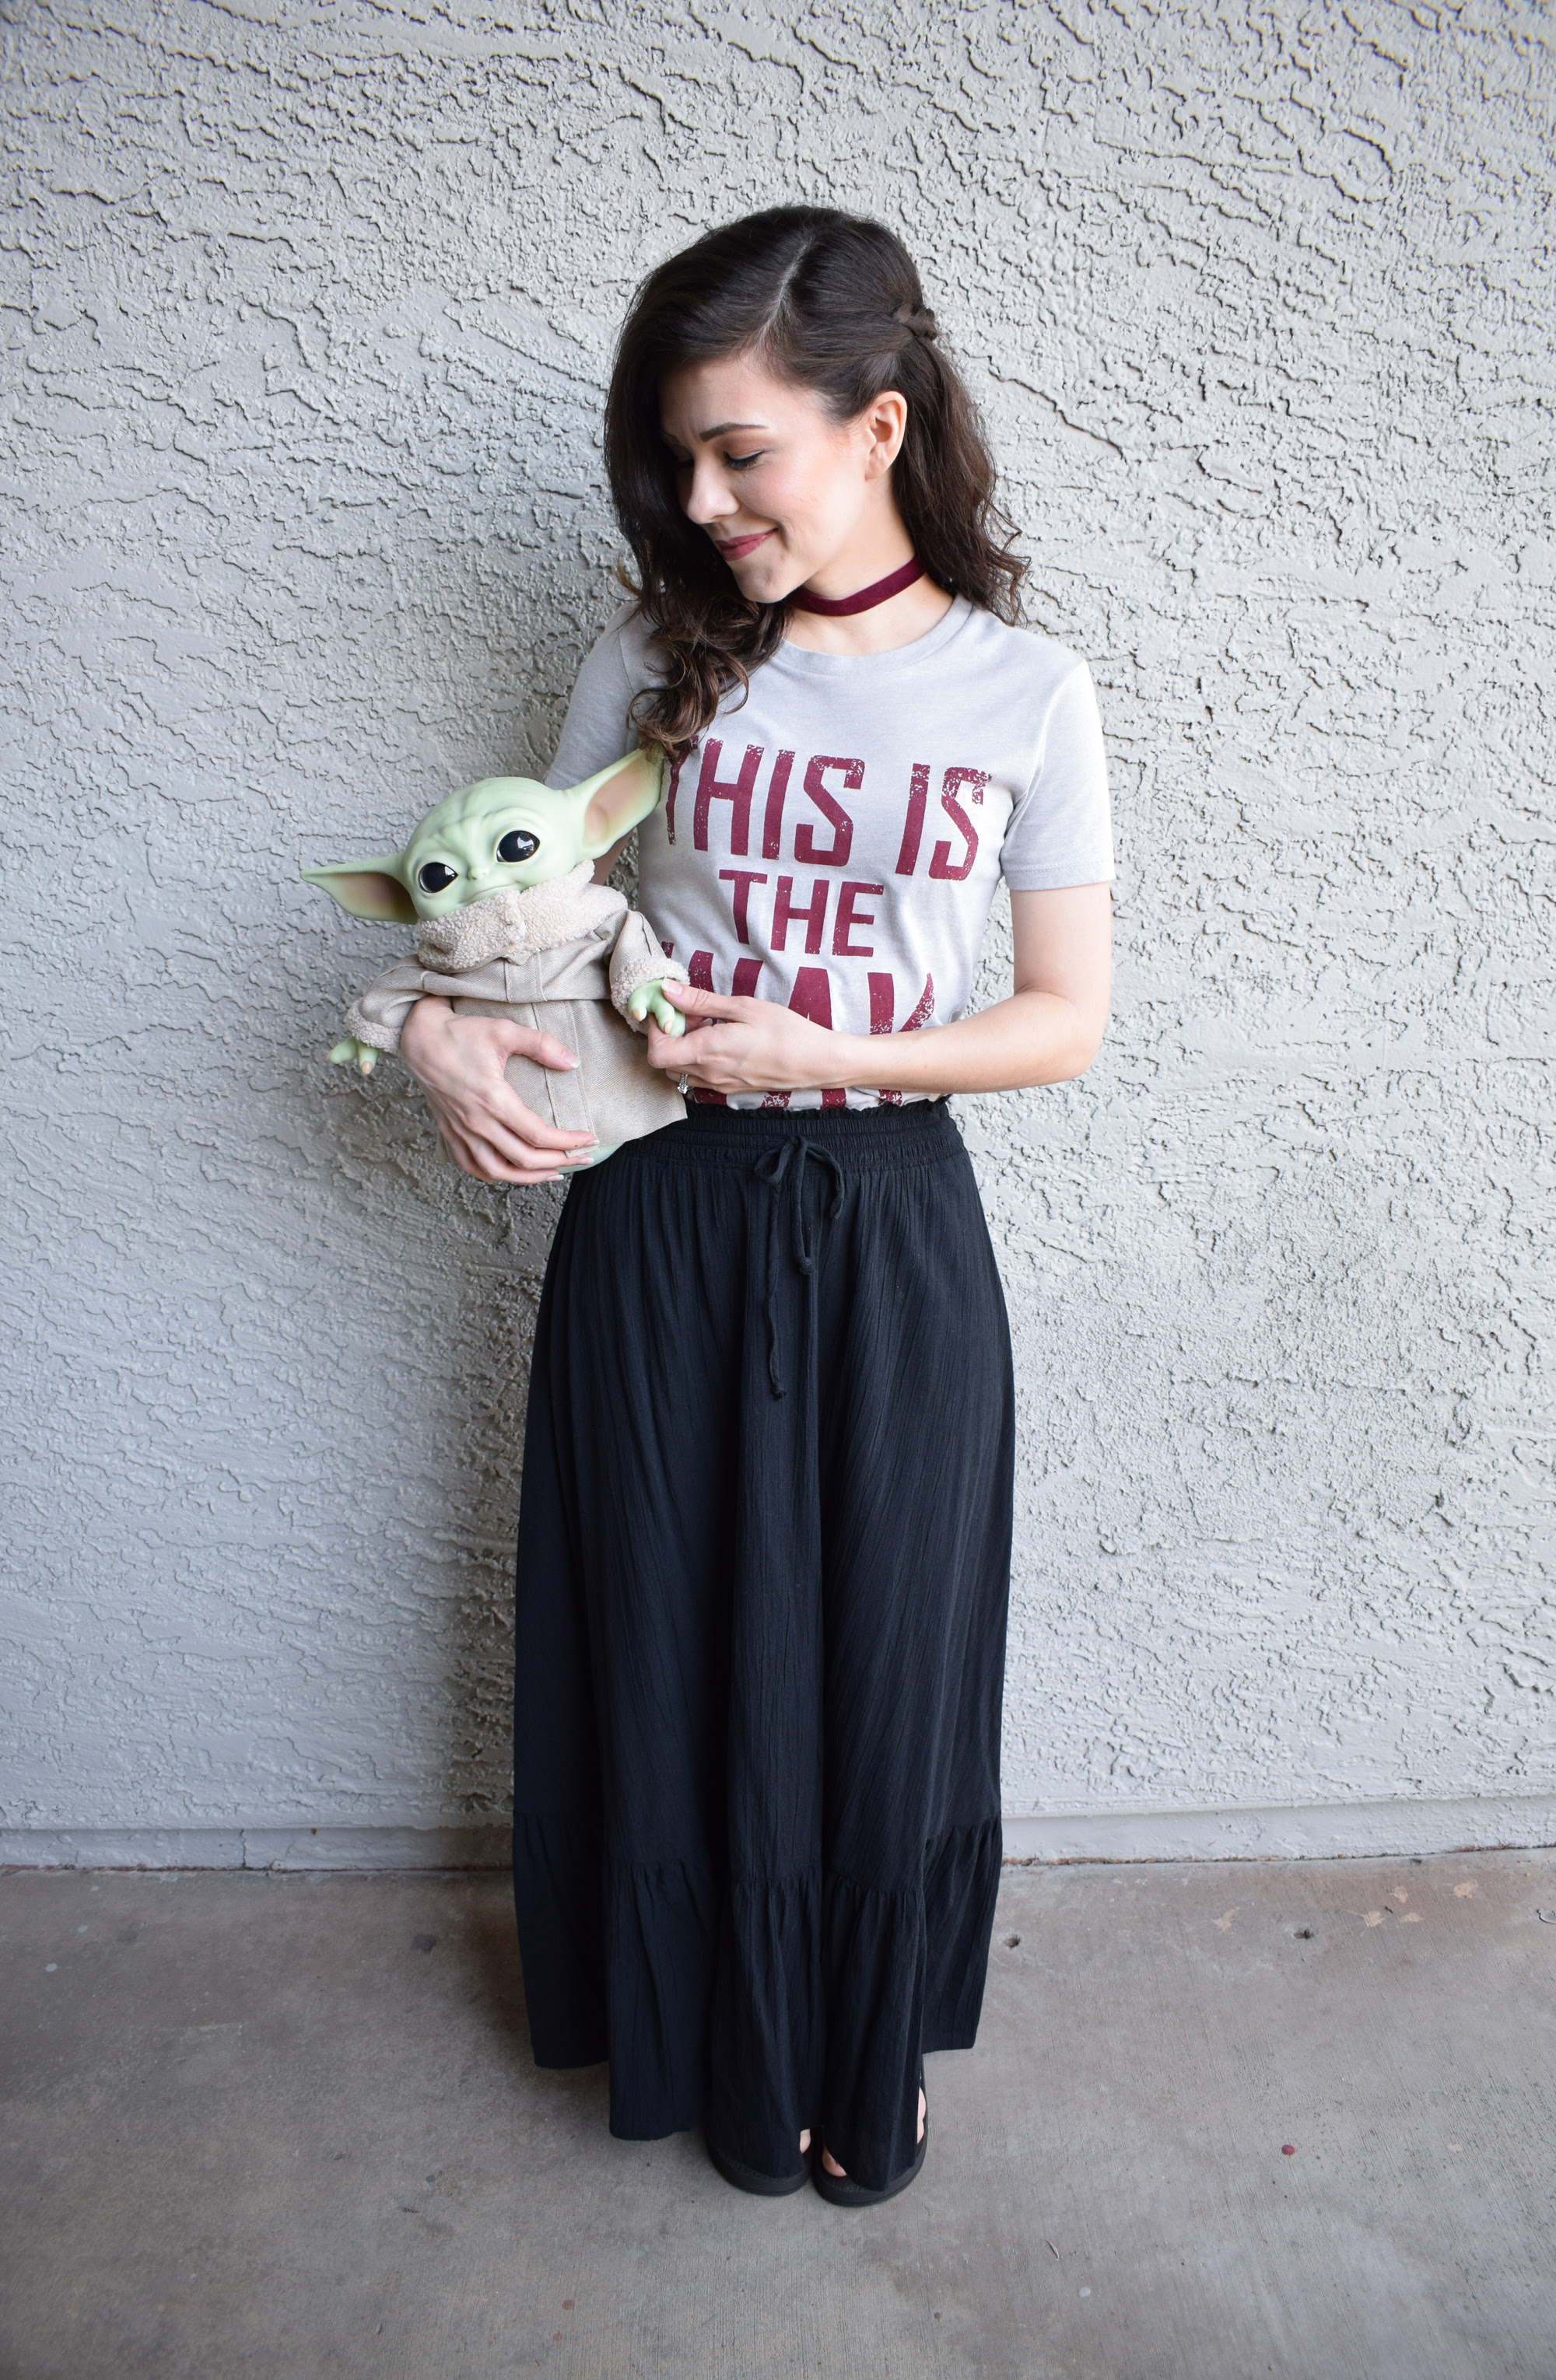 Star Wars OOTD: This Is The Way